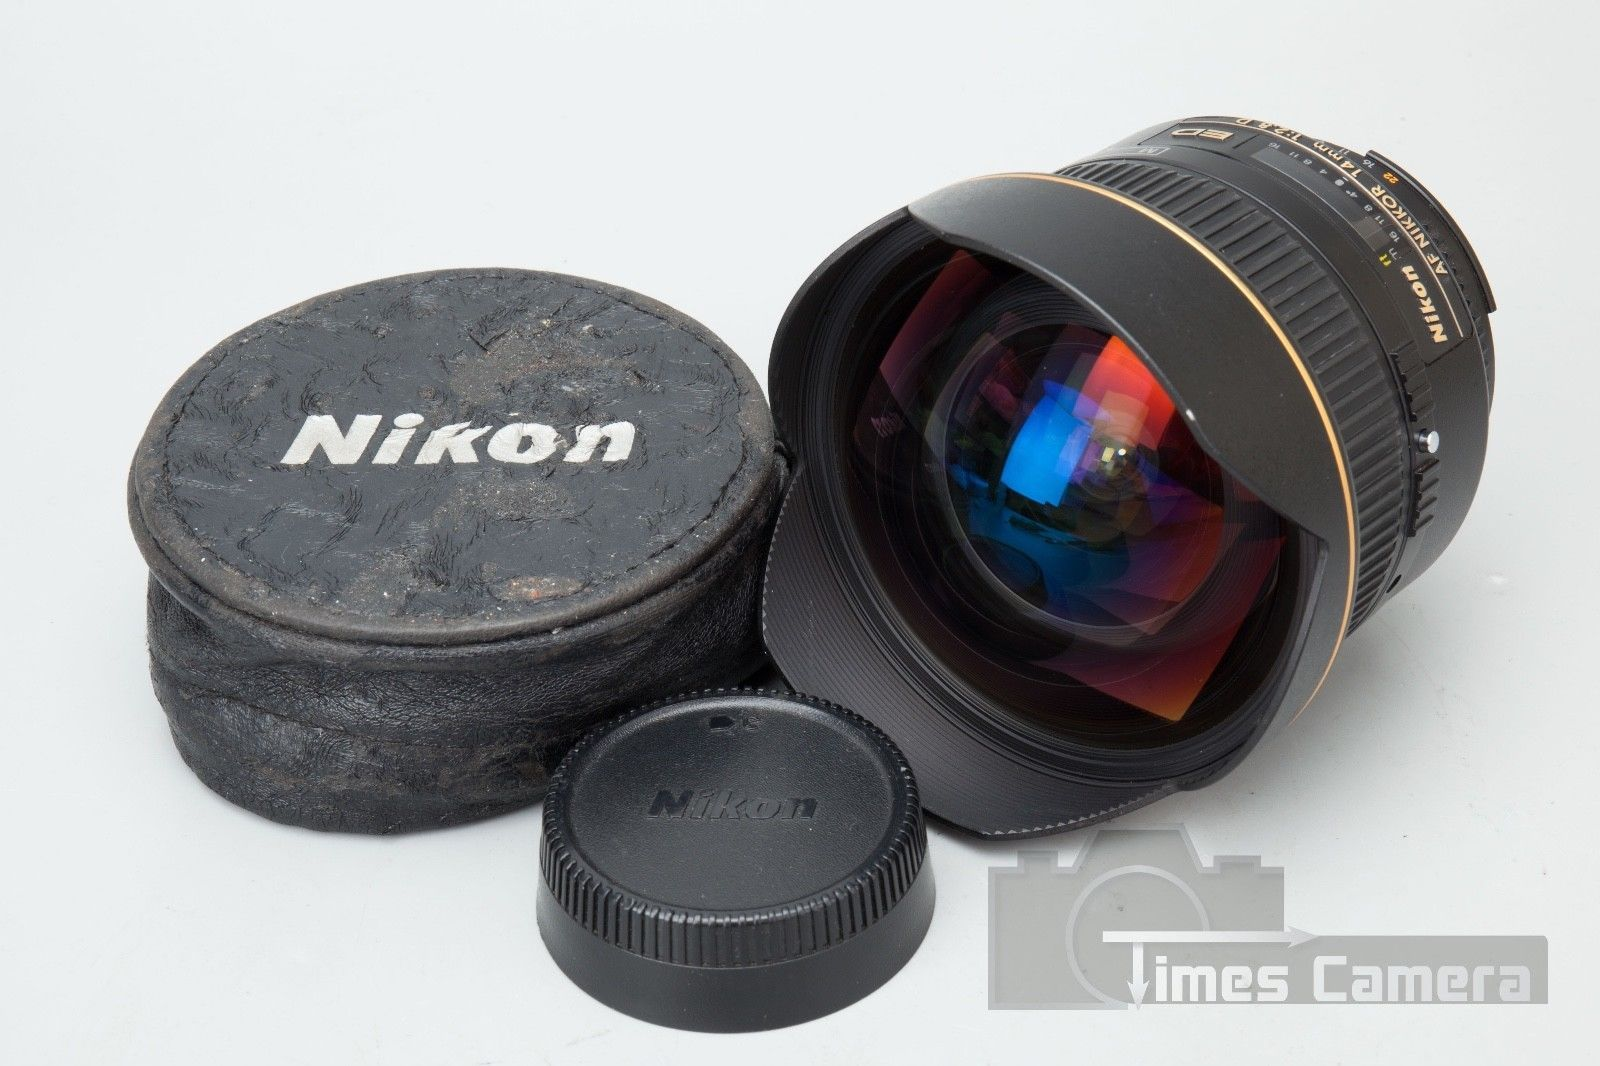 Nikon Af Nikkor 14mm F 2 8 D Rf Ed Super Wide Angle Lens For D7200 D750 D810 Nikon Stuff To Buy Electronic Products